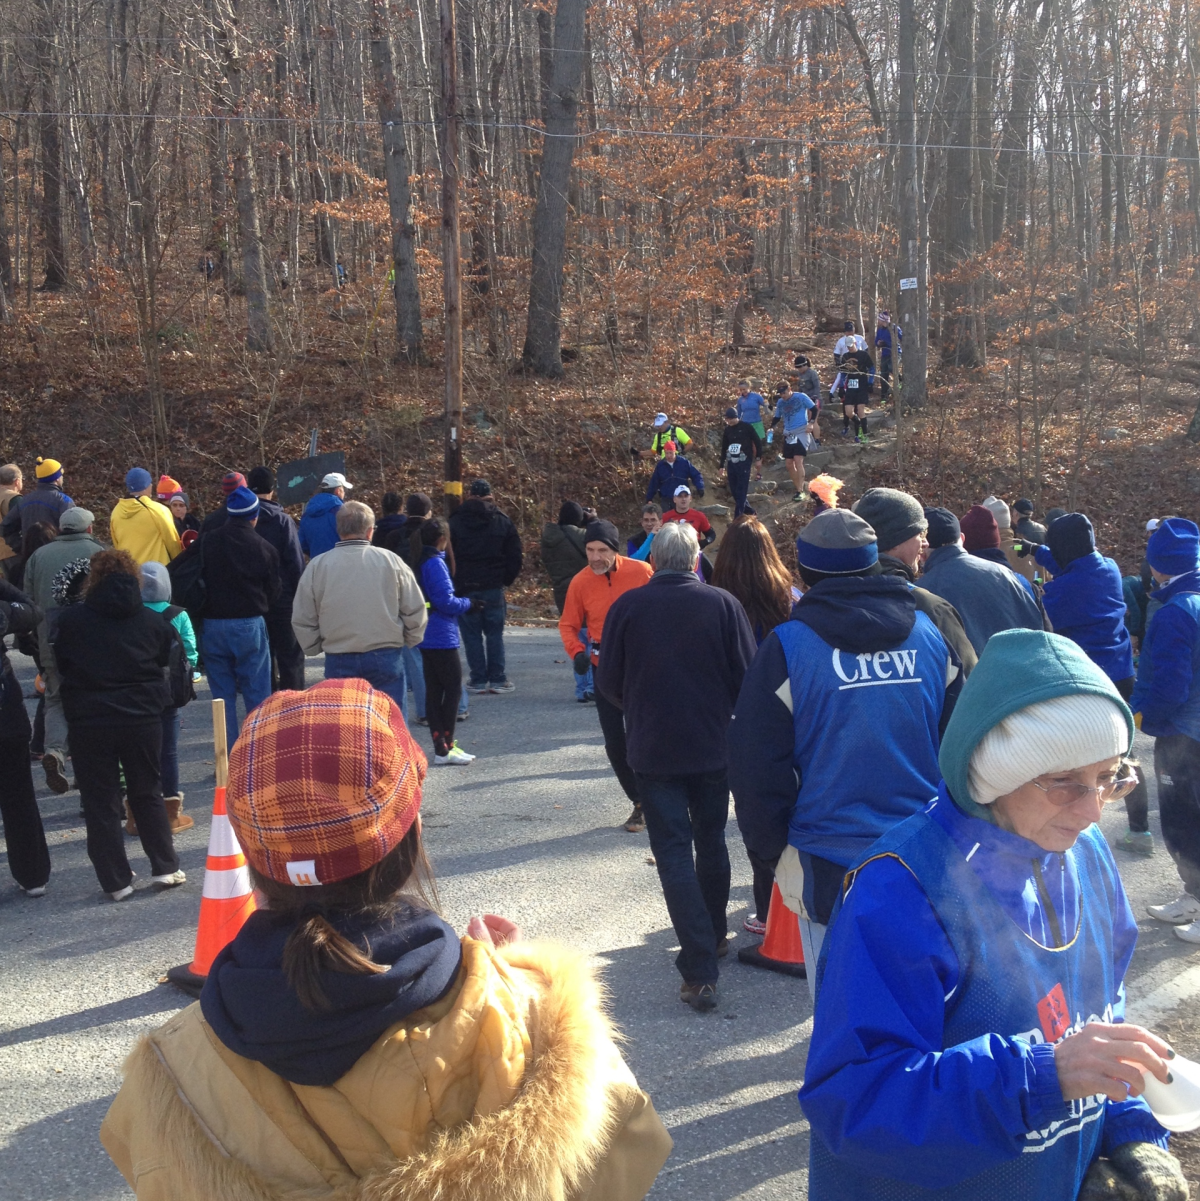 Spectators and volunteers at the first viewing area of the 2013 JFK 50 Mile race